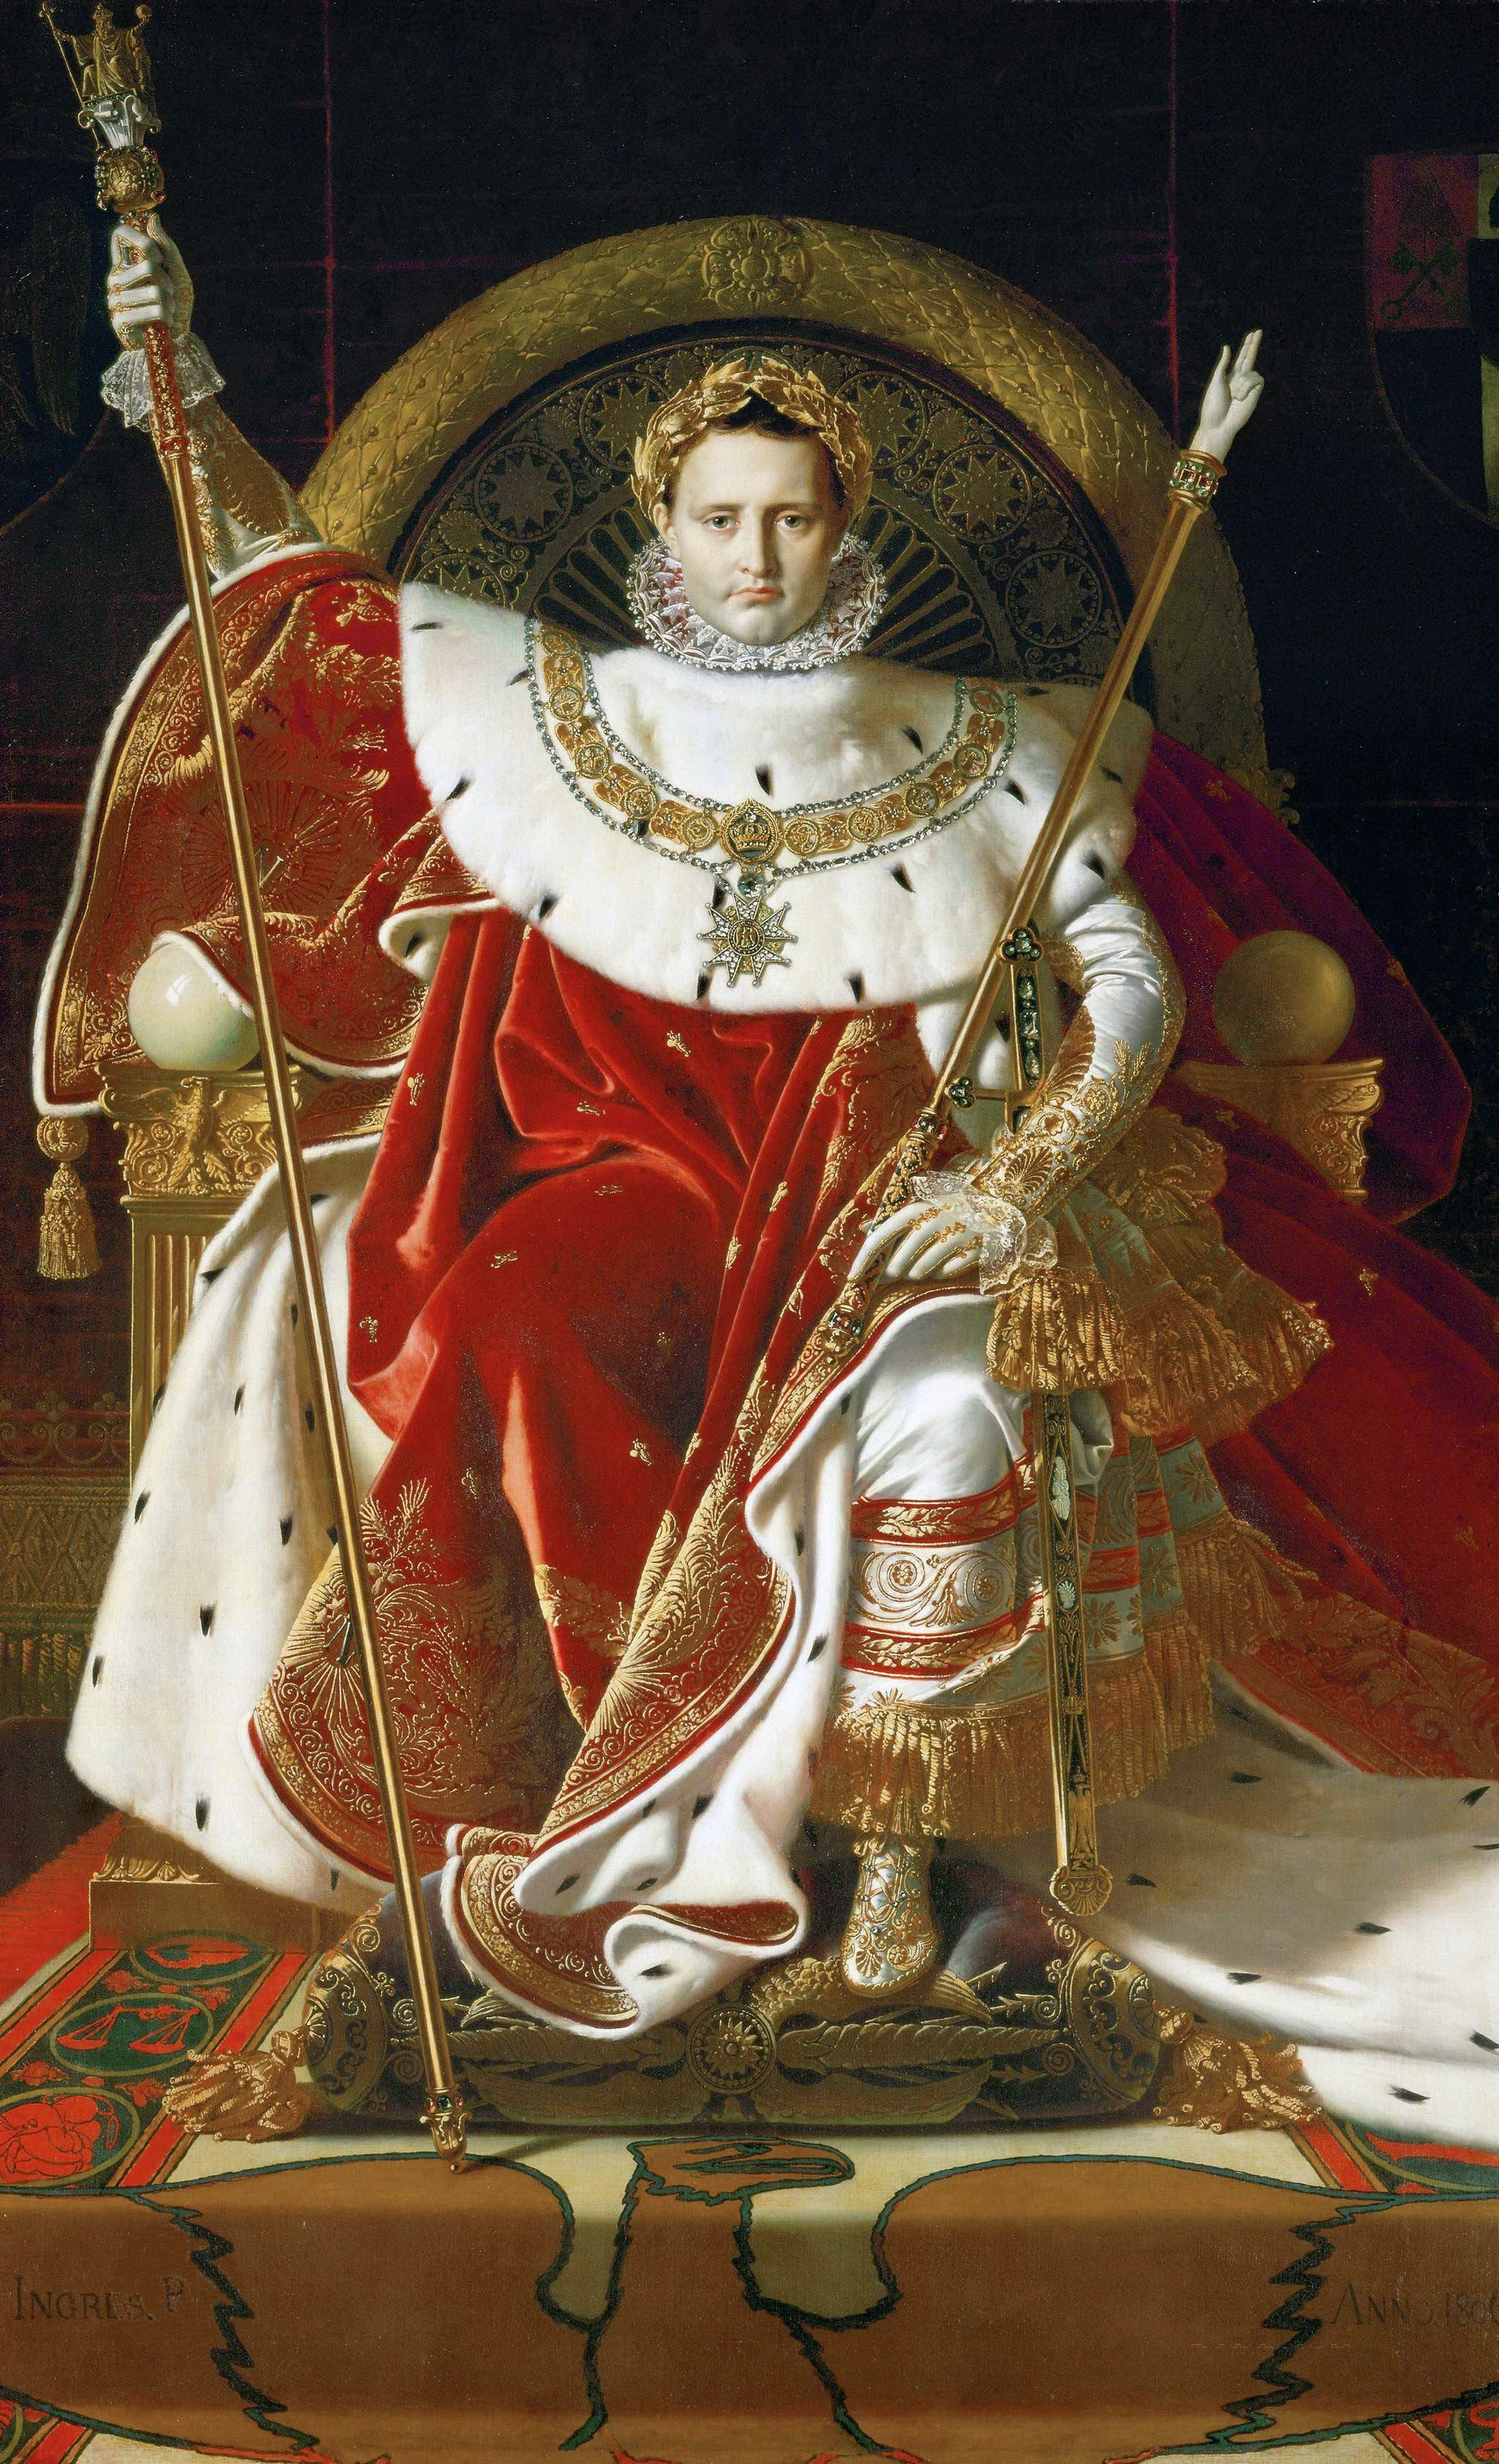 http://upload.wikimedia.org/wikipedia/commons/2/28/Ingres,_Napoleon_on_his_Imperial_throne.jpg